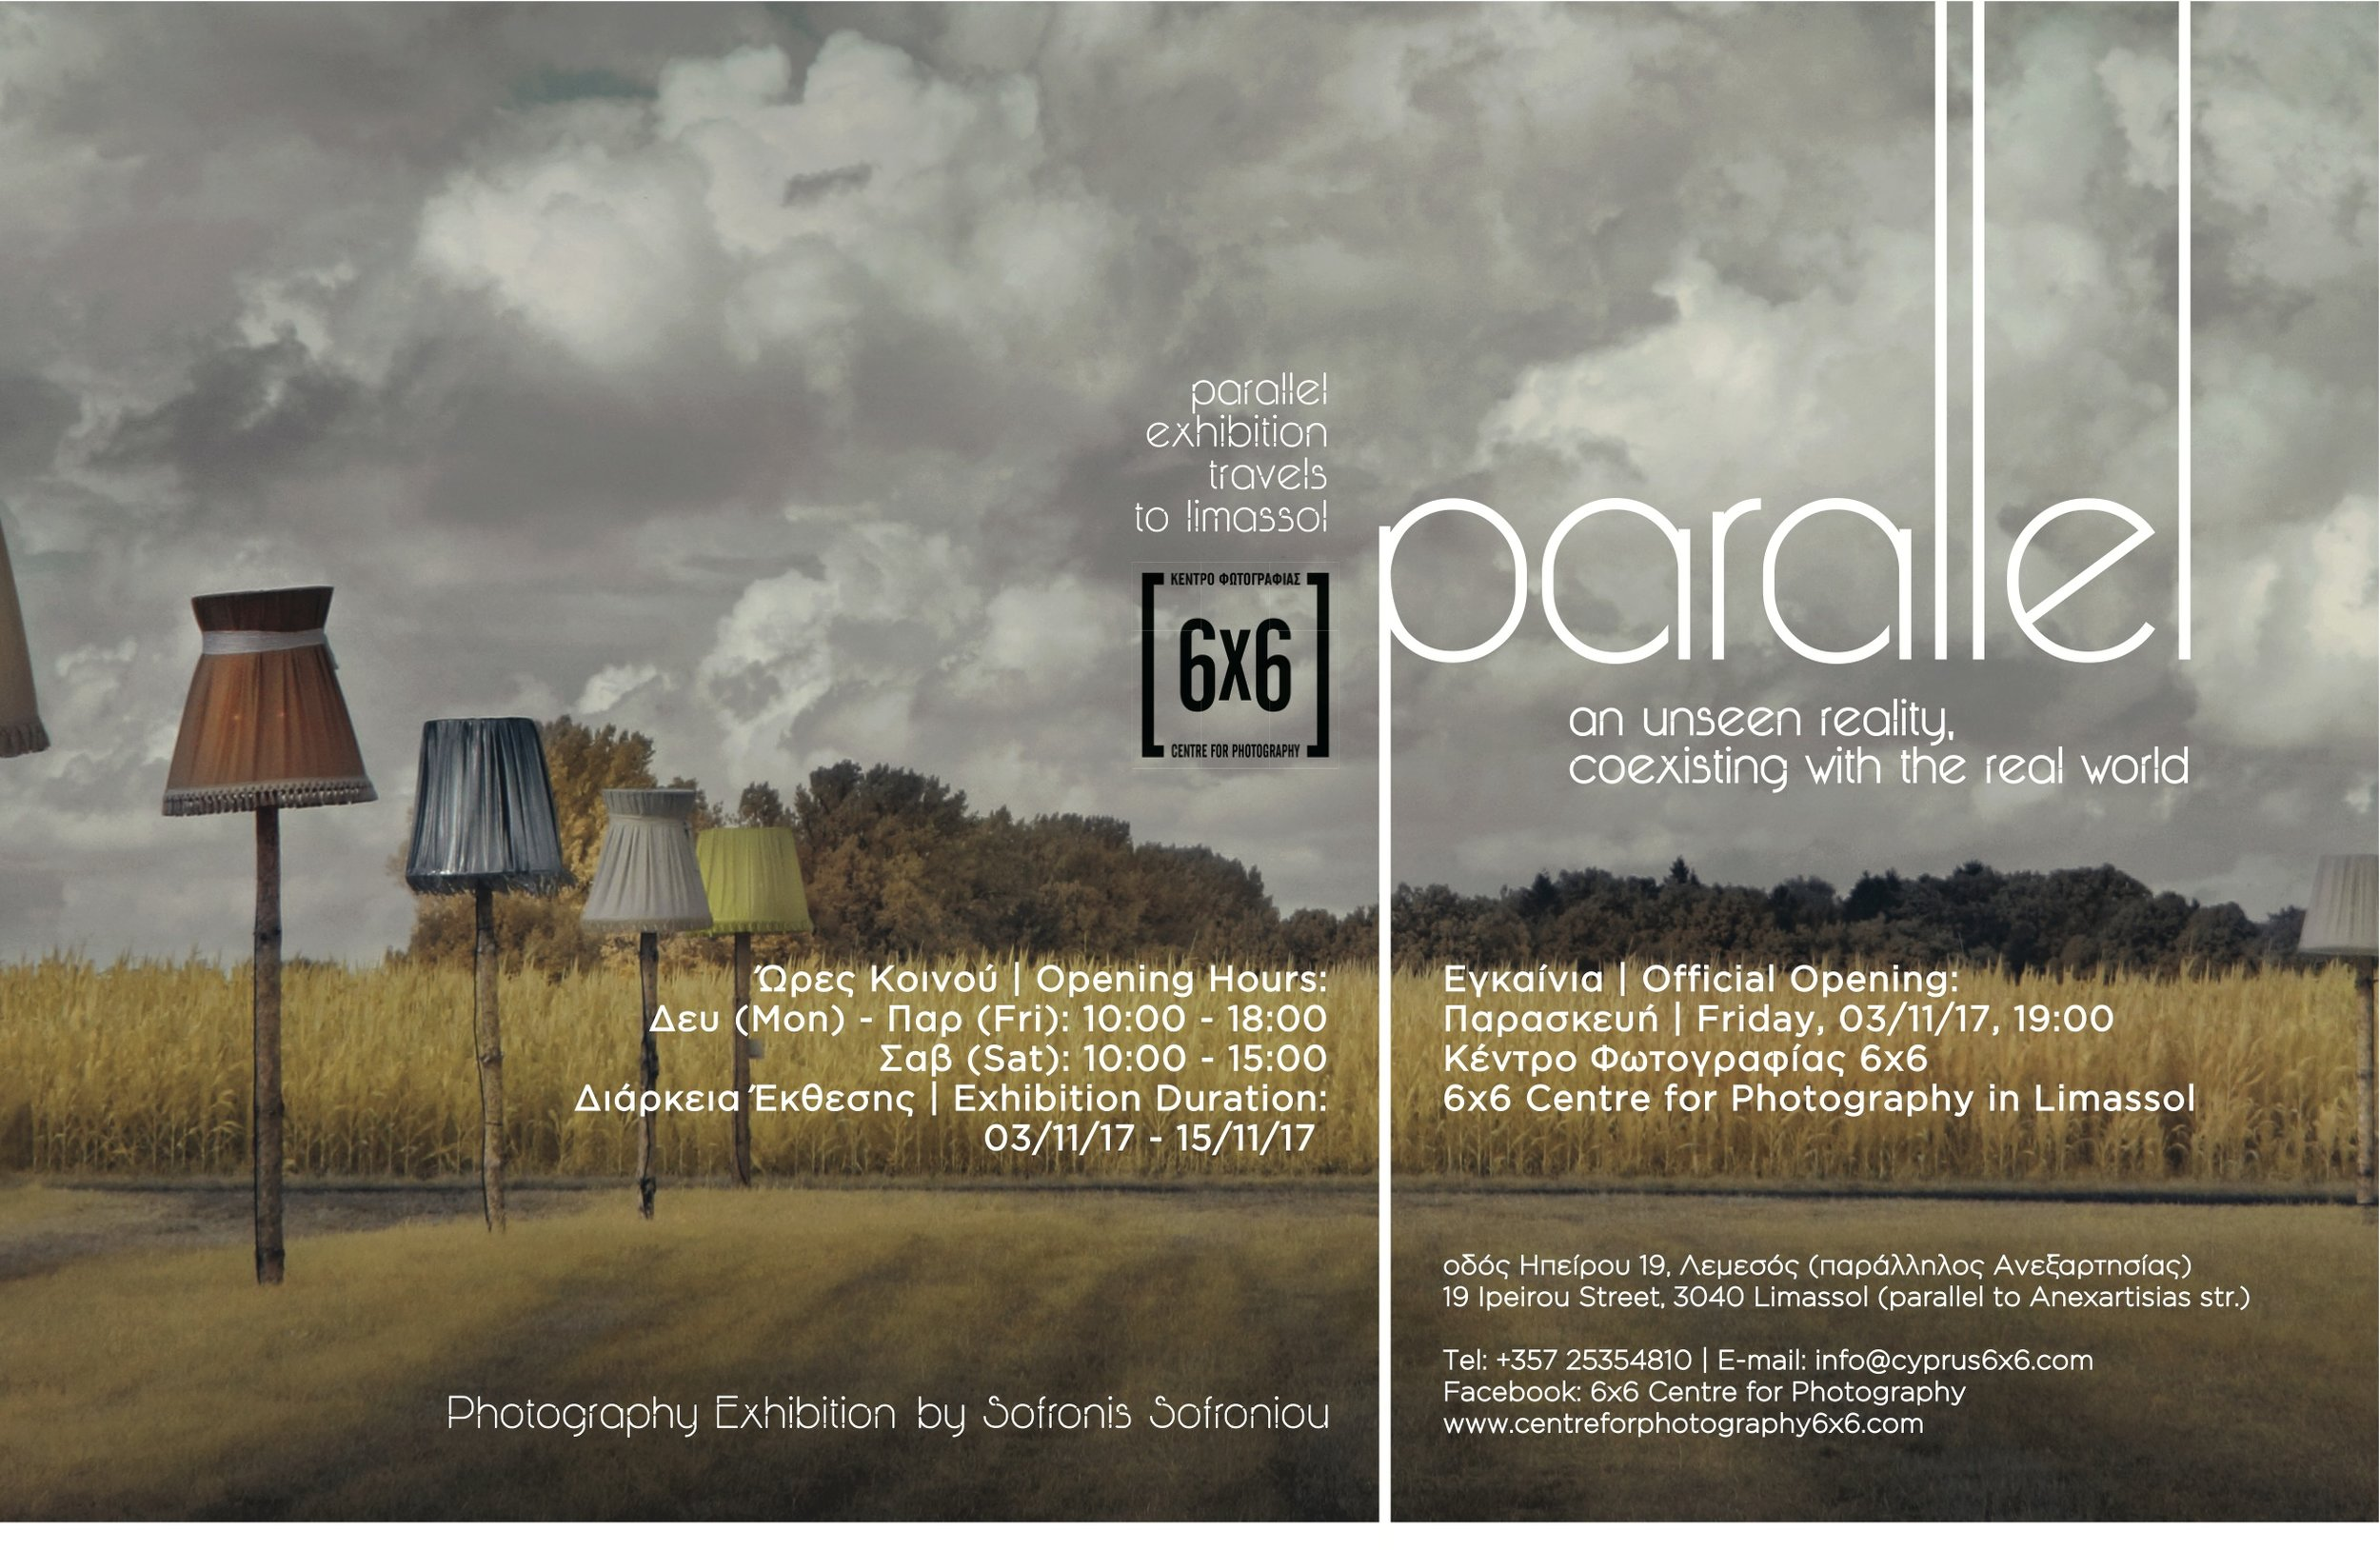 PARALLEL Photo Exhibition.jpg